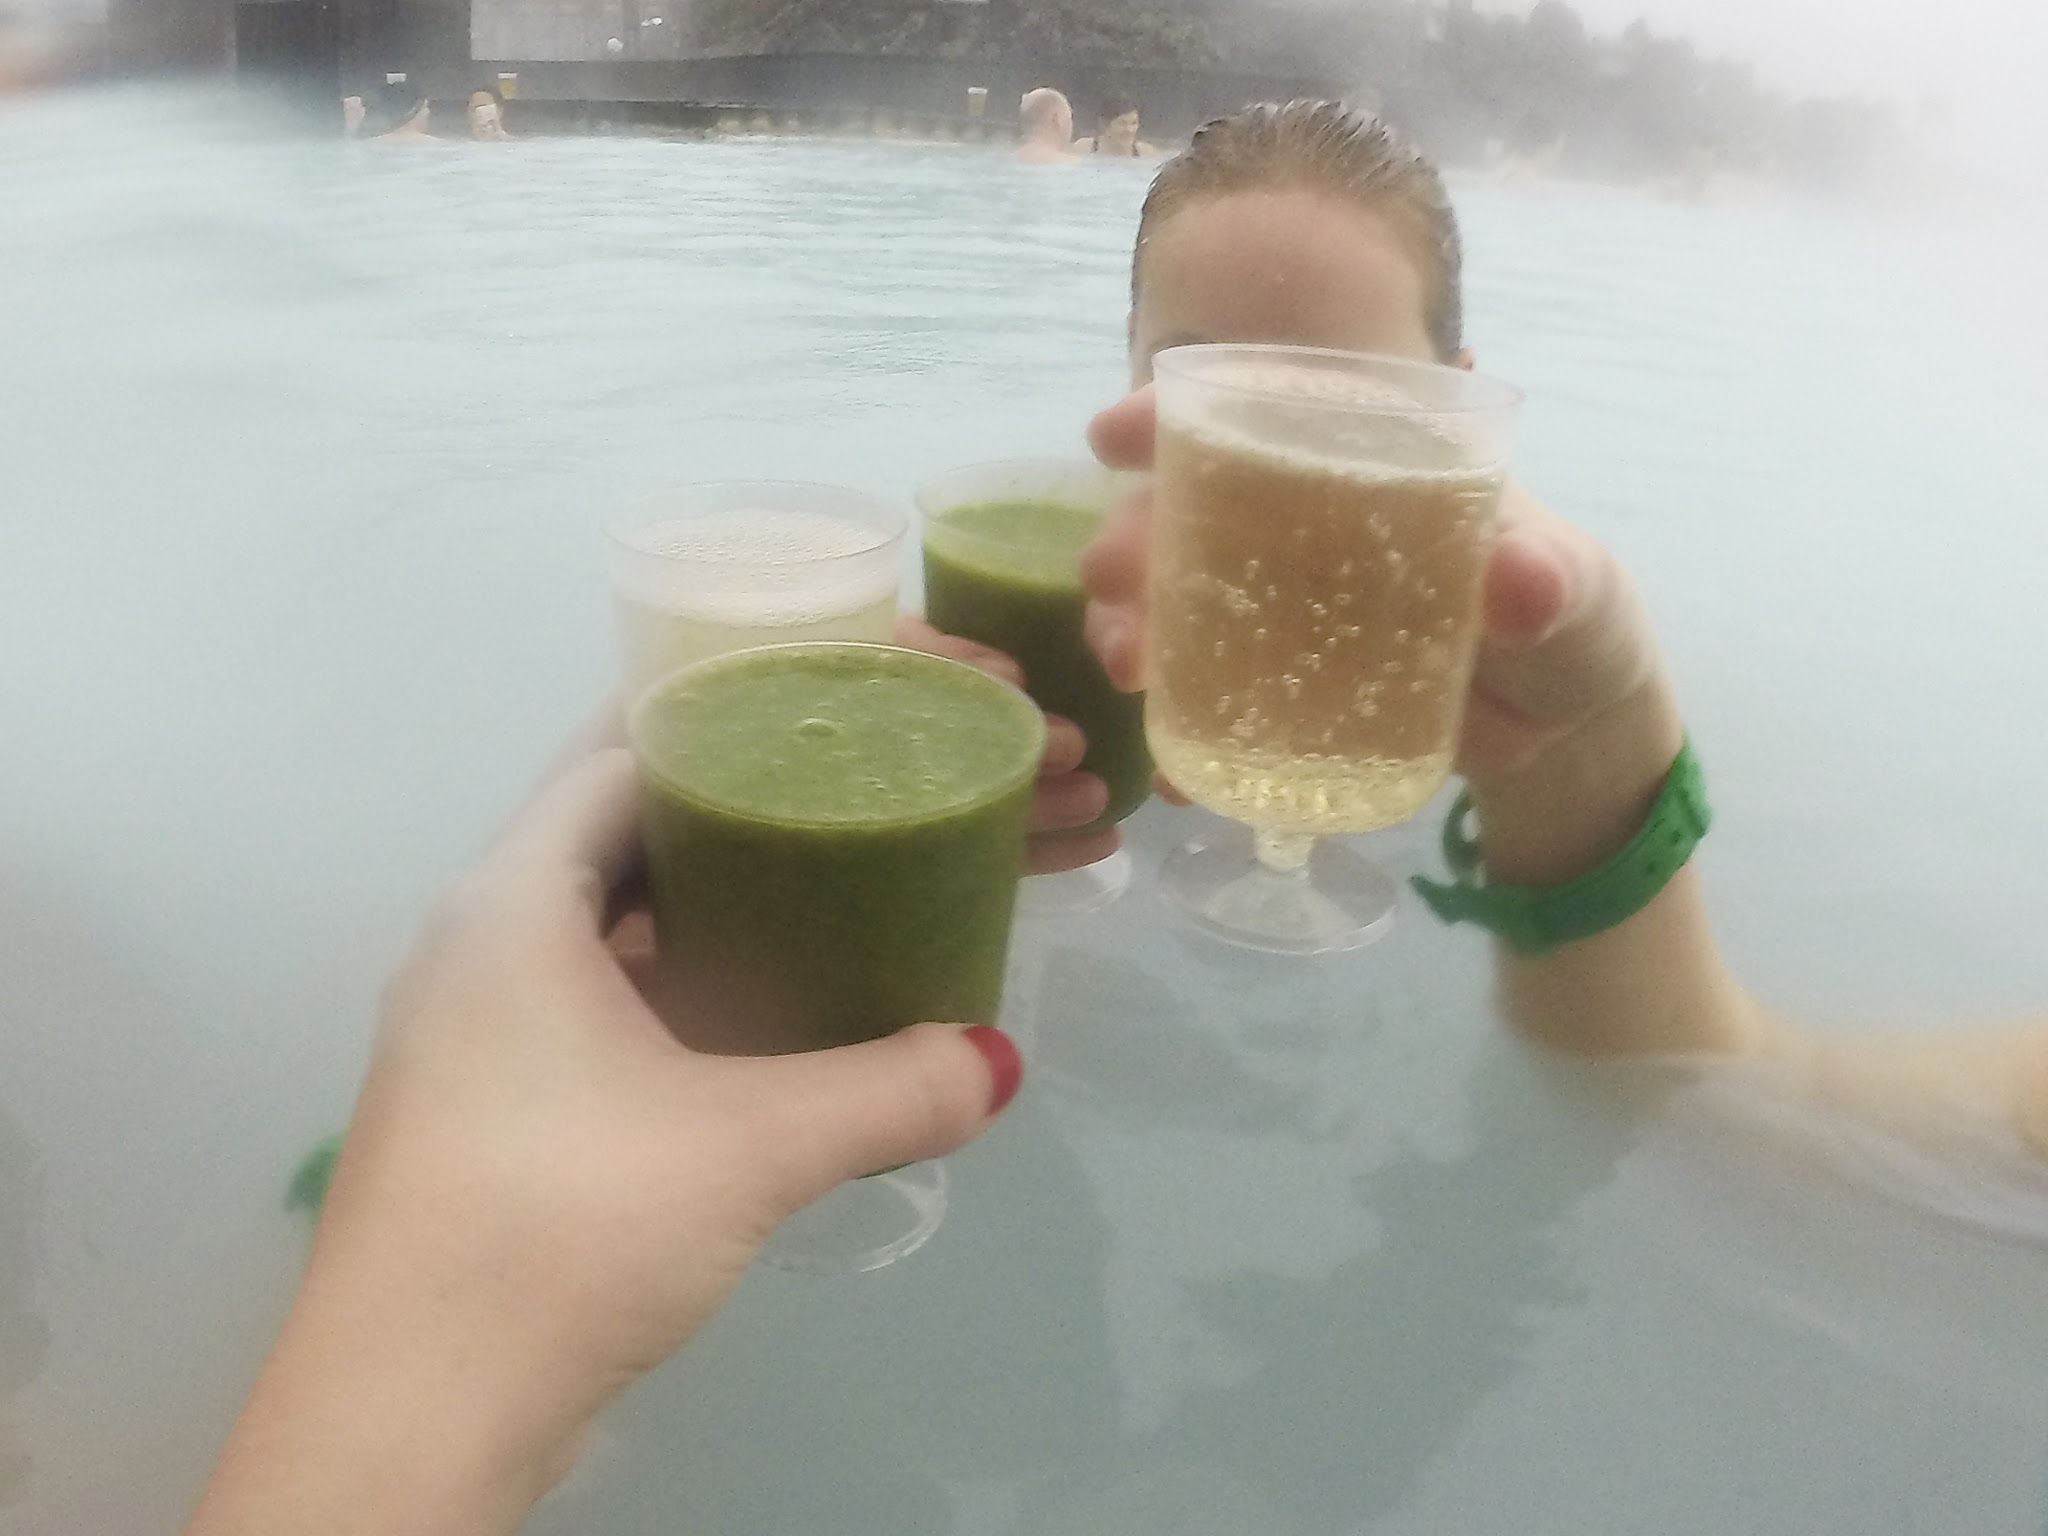 two glasses of prosecco and two glasses of green juice being clinked together above blue water with steam rising